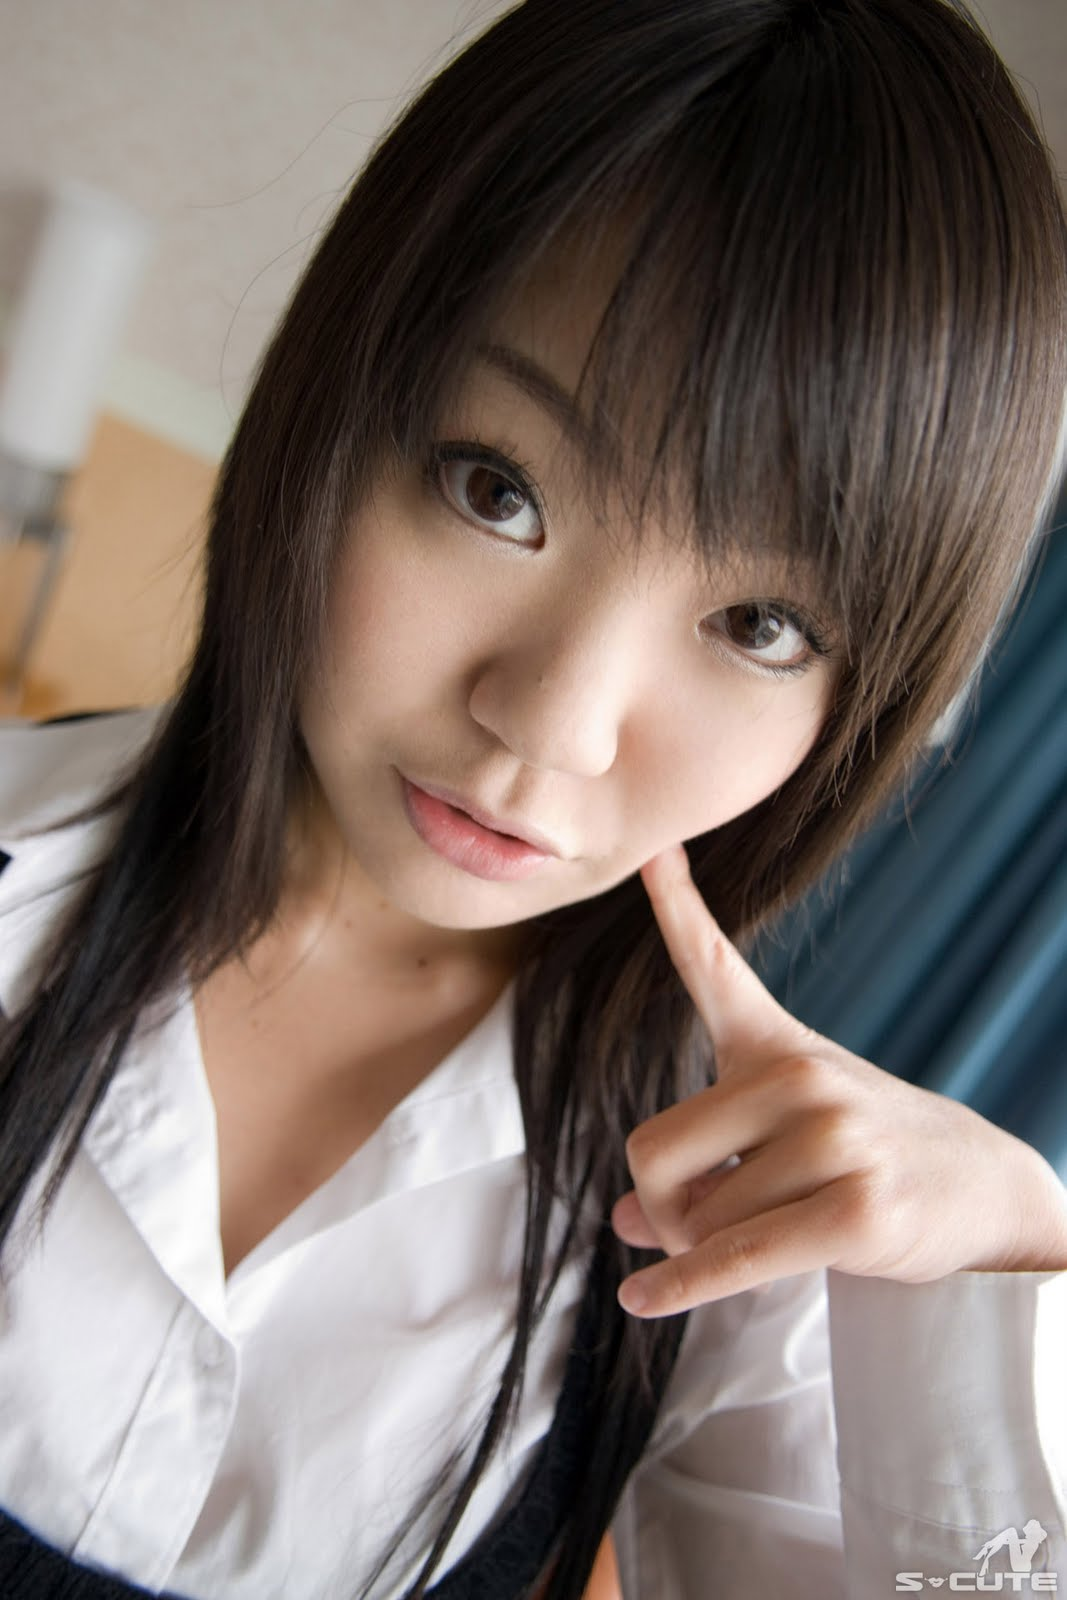 Pretty Girls That Make The World A Little More Beautiful: Pretty Japanese Schoolgirls